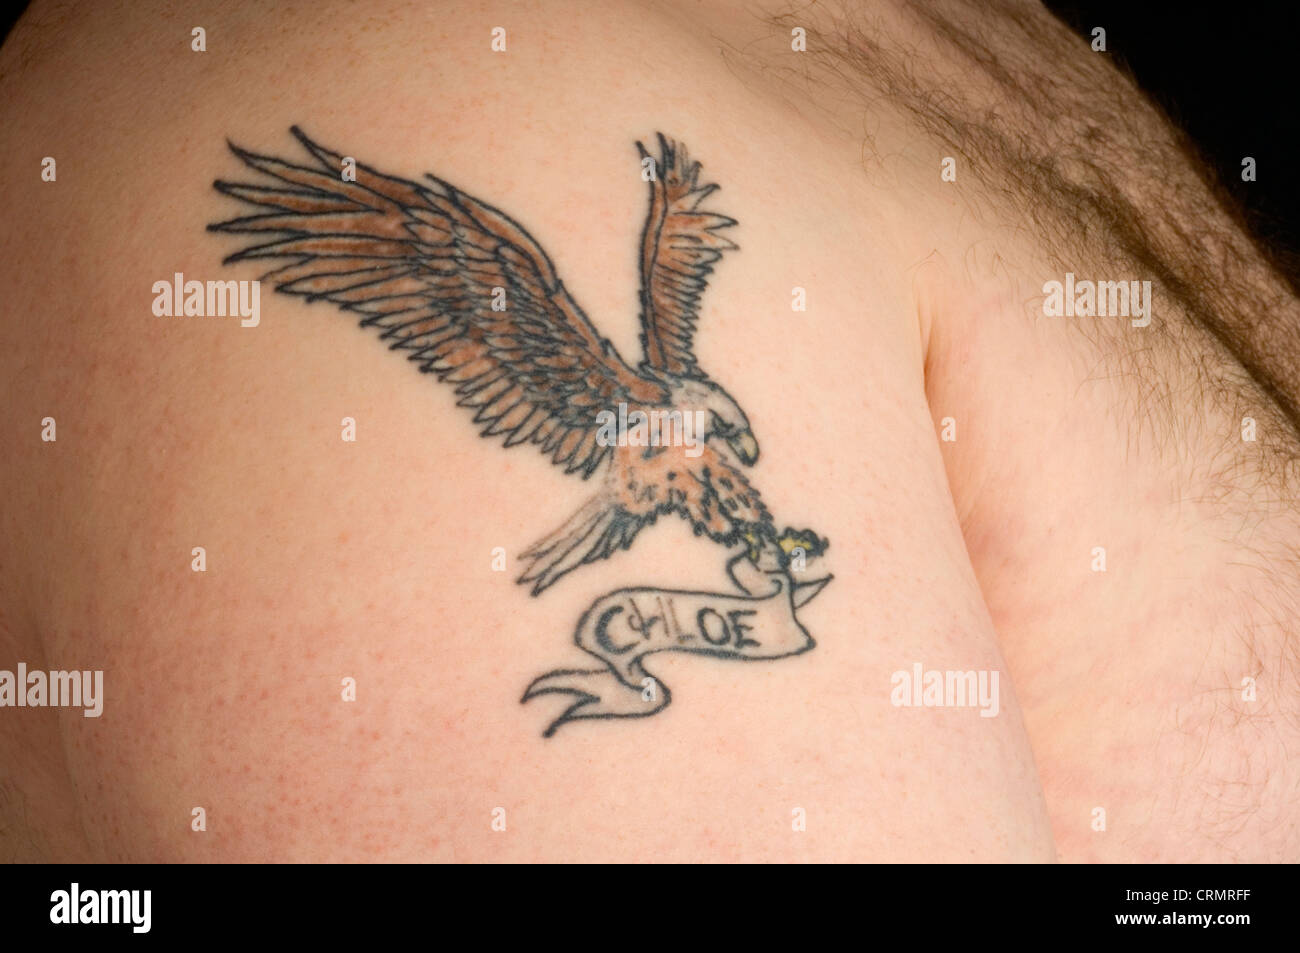 eagle tattoo stockfotos eagle tattoo bilder alamy. Black Bedroom Furniture Sets. Home Design Ideas